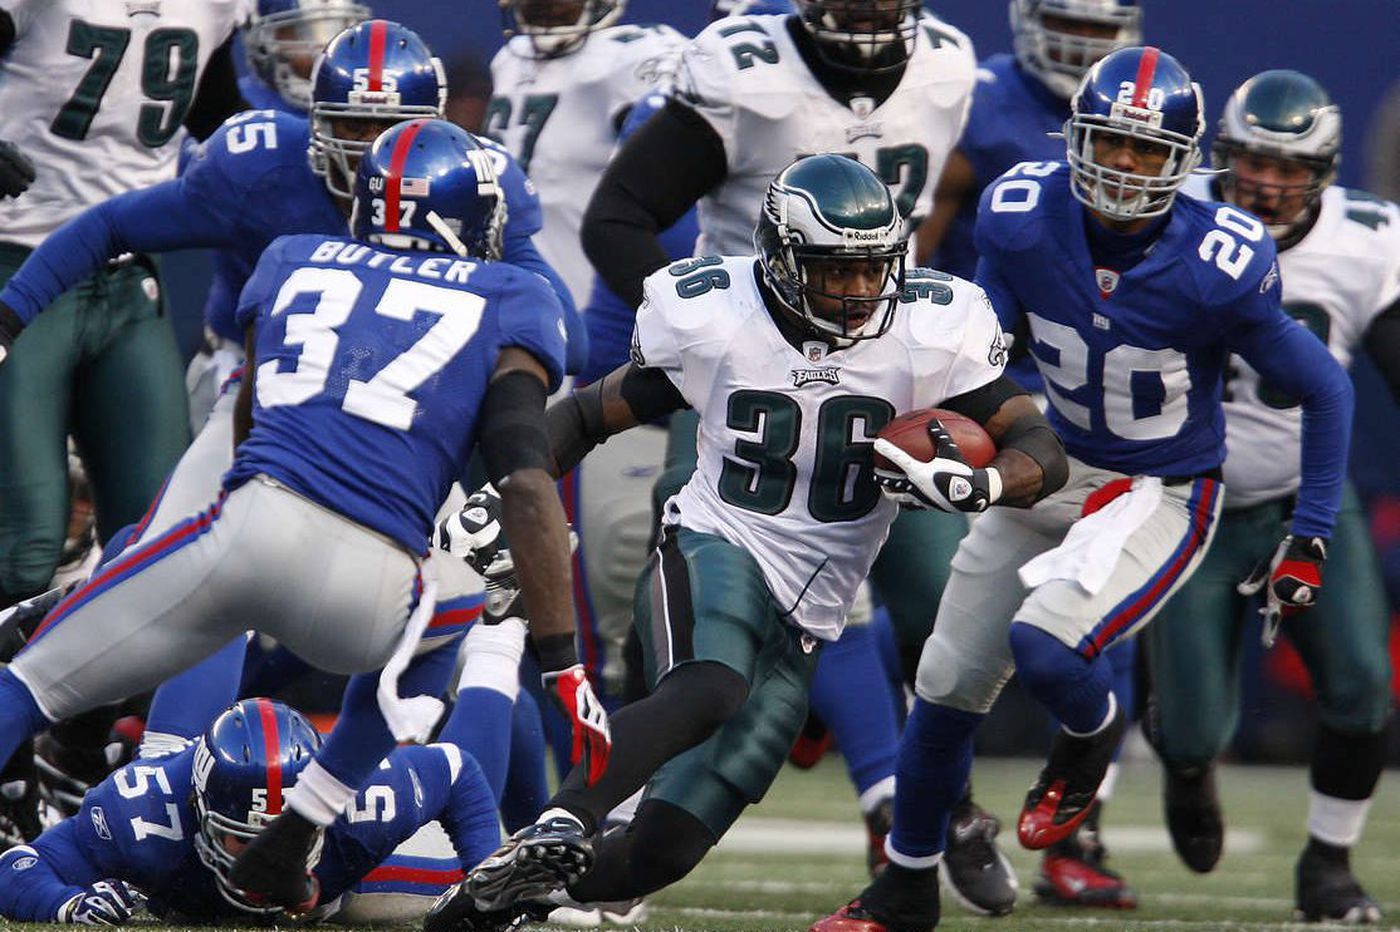 A look back at the Eagles' last trip to the NFC championship game